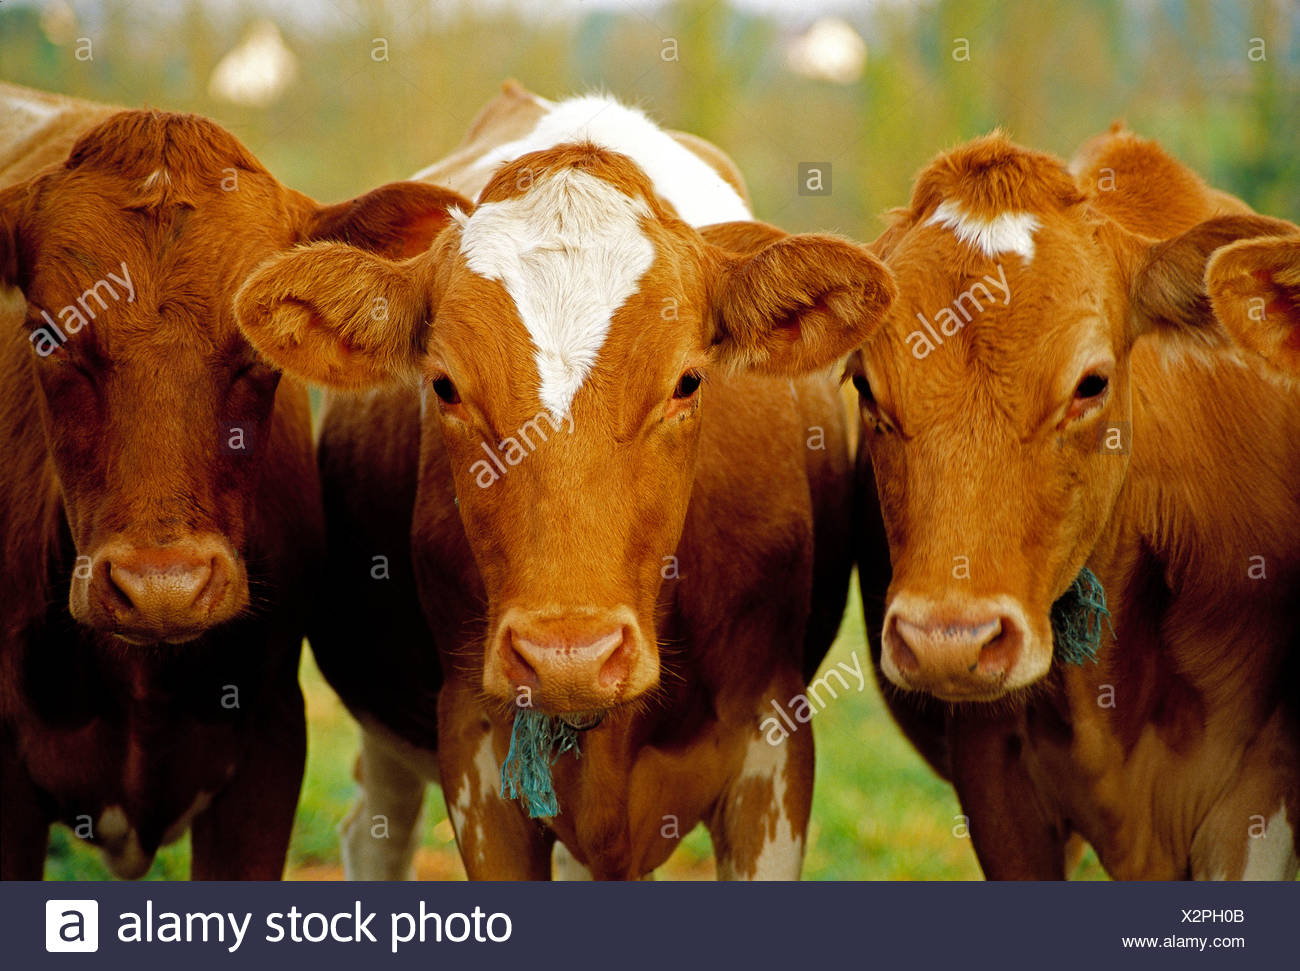 L'agriculture. les bovins. trois vaches guernesey close up. Photo Stock